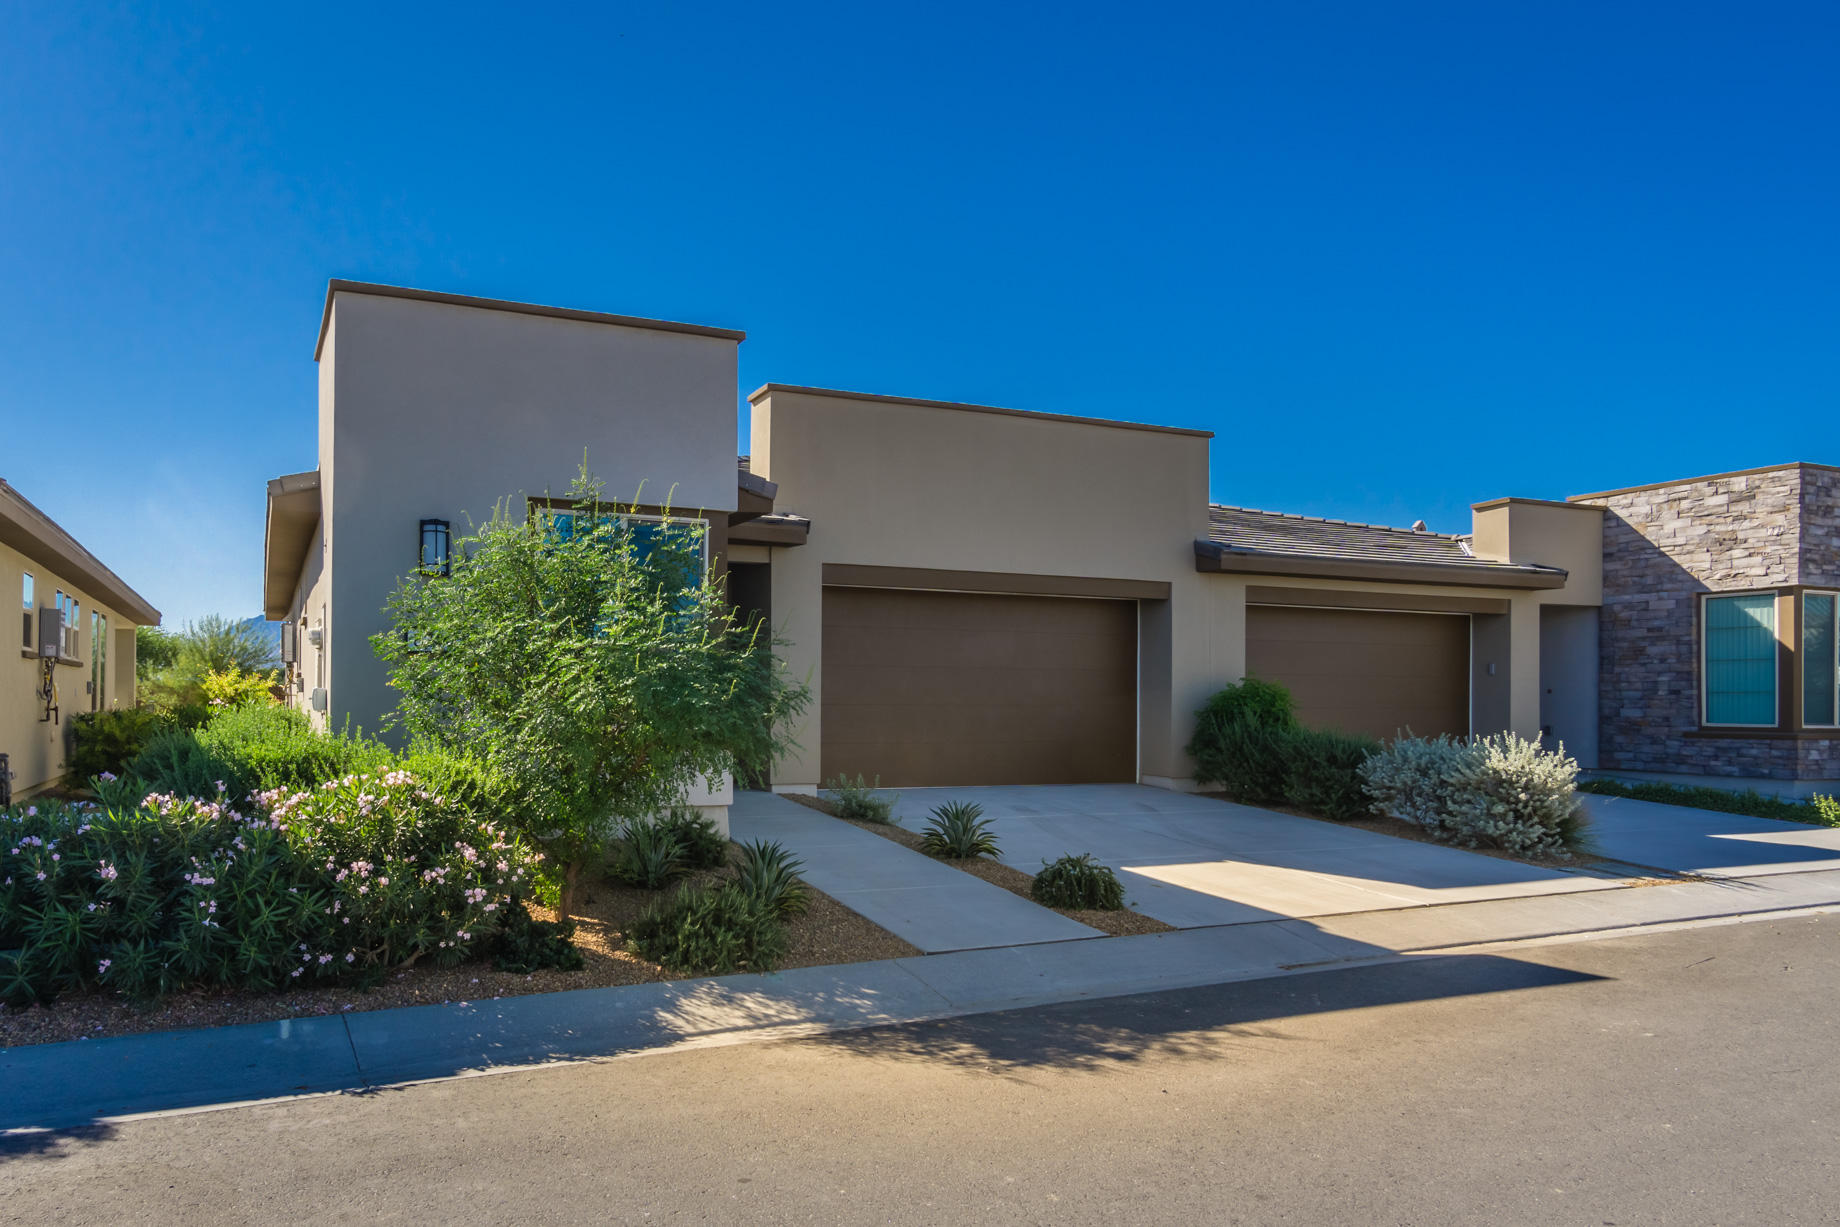 Photo of 82741 Rosewood Drive, Indio, CA 92201